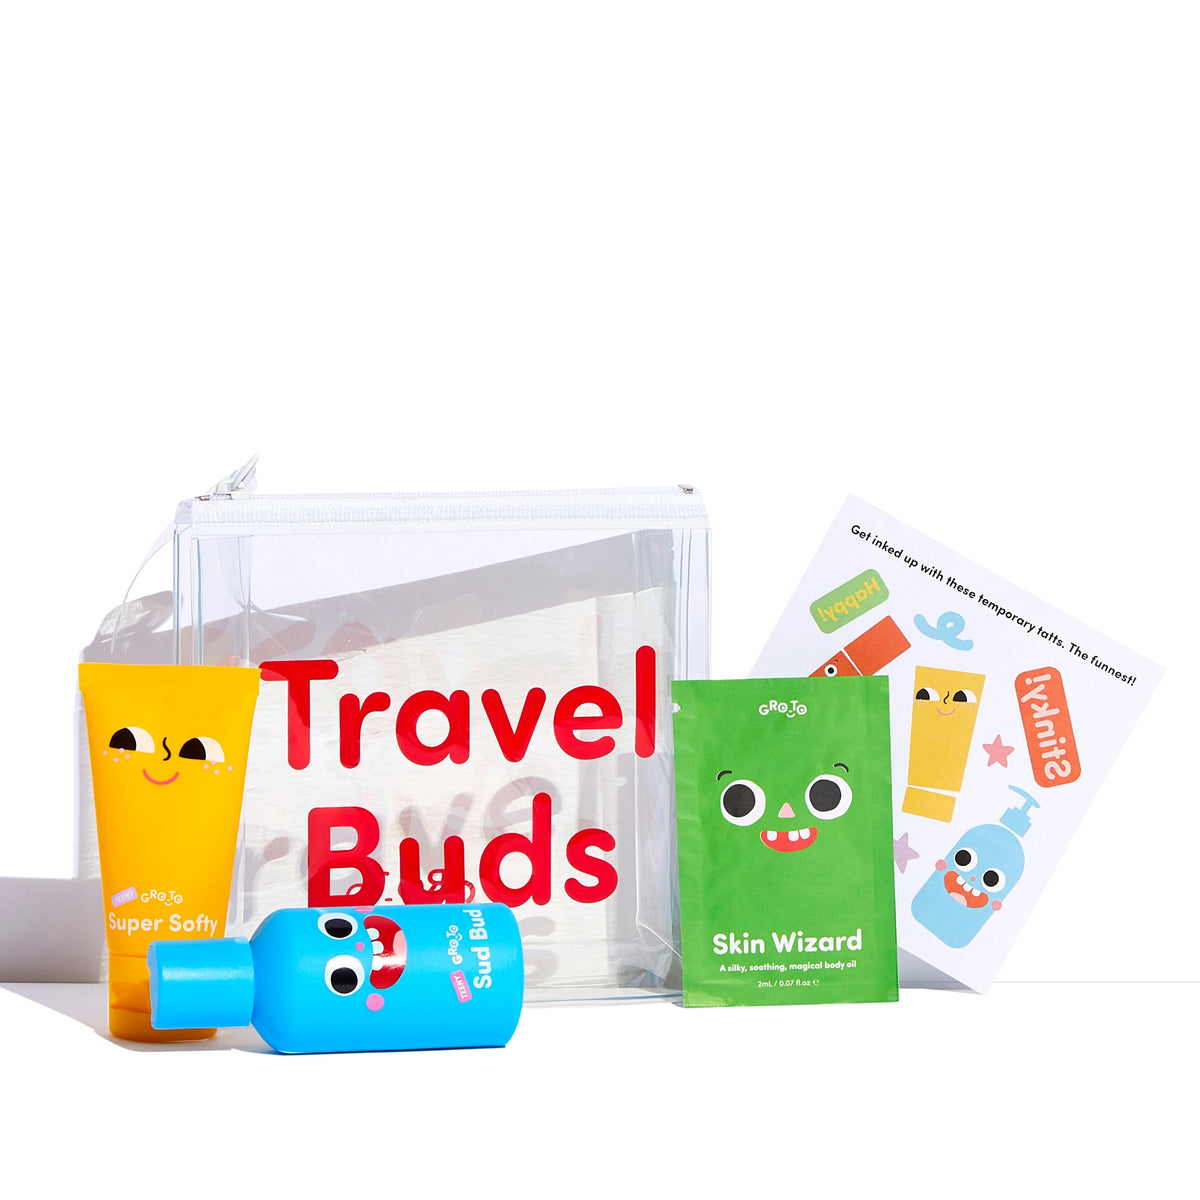 Travel Buds